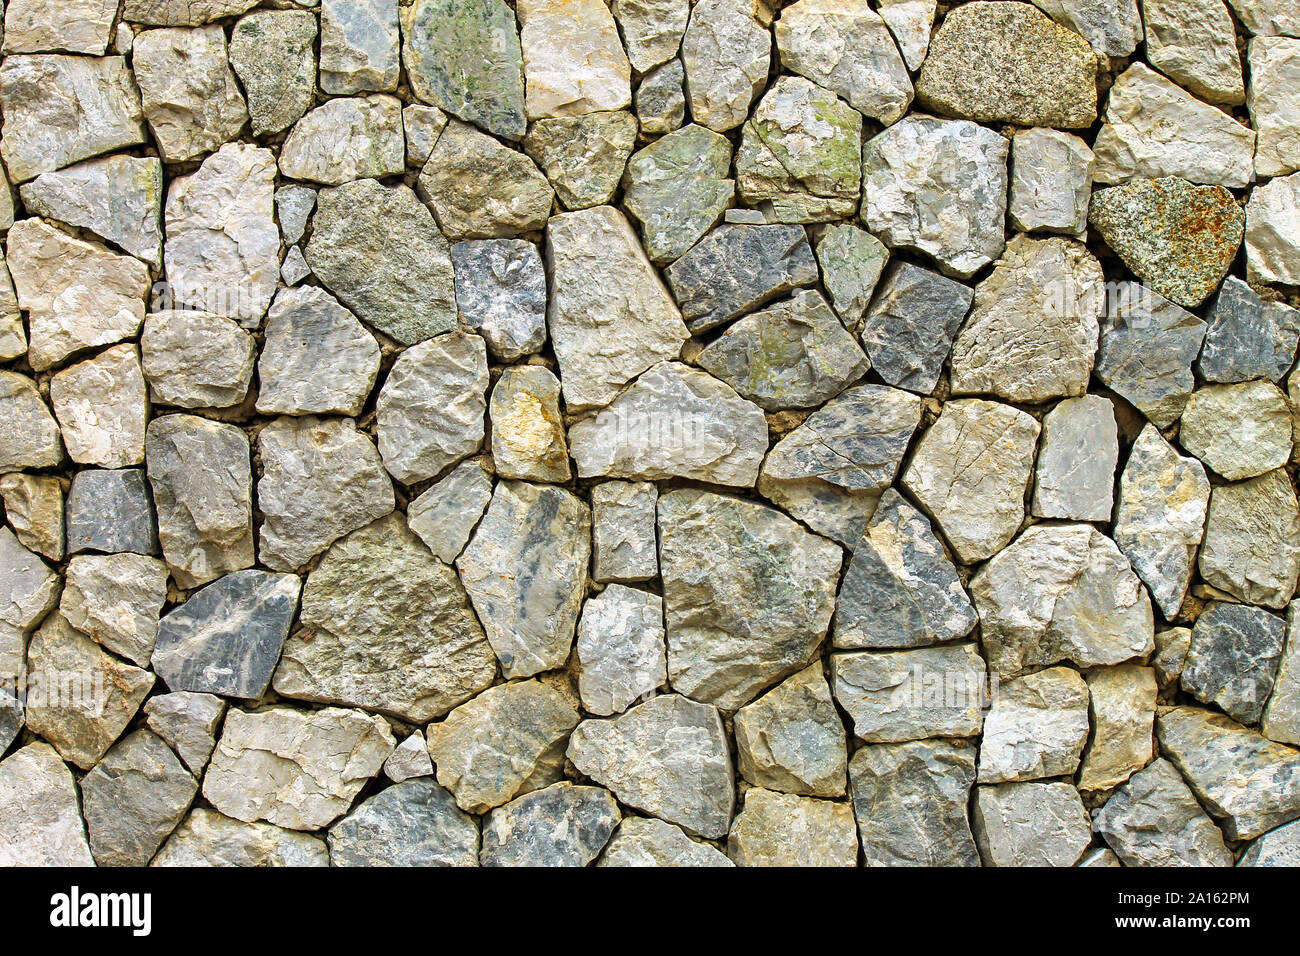 Wall Of Gray Large Stone Decorative Material Industrial